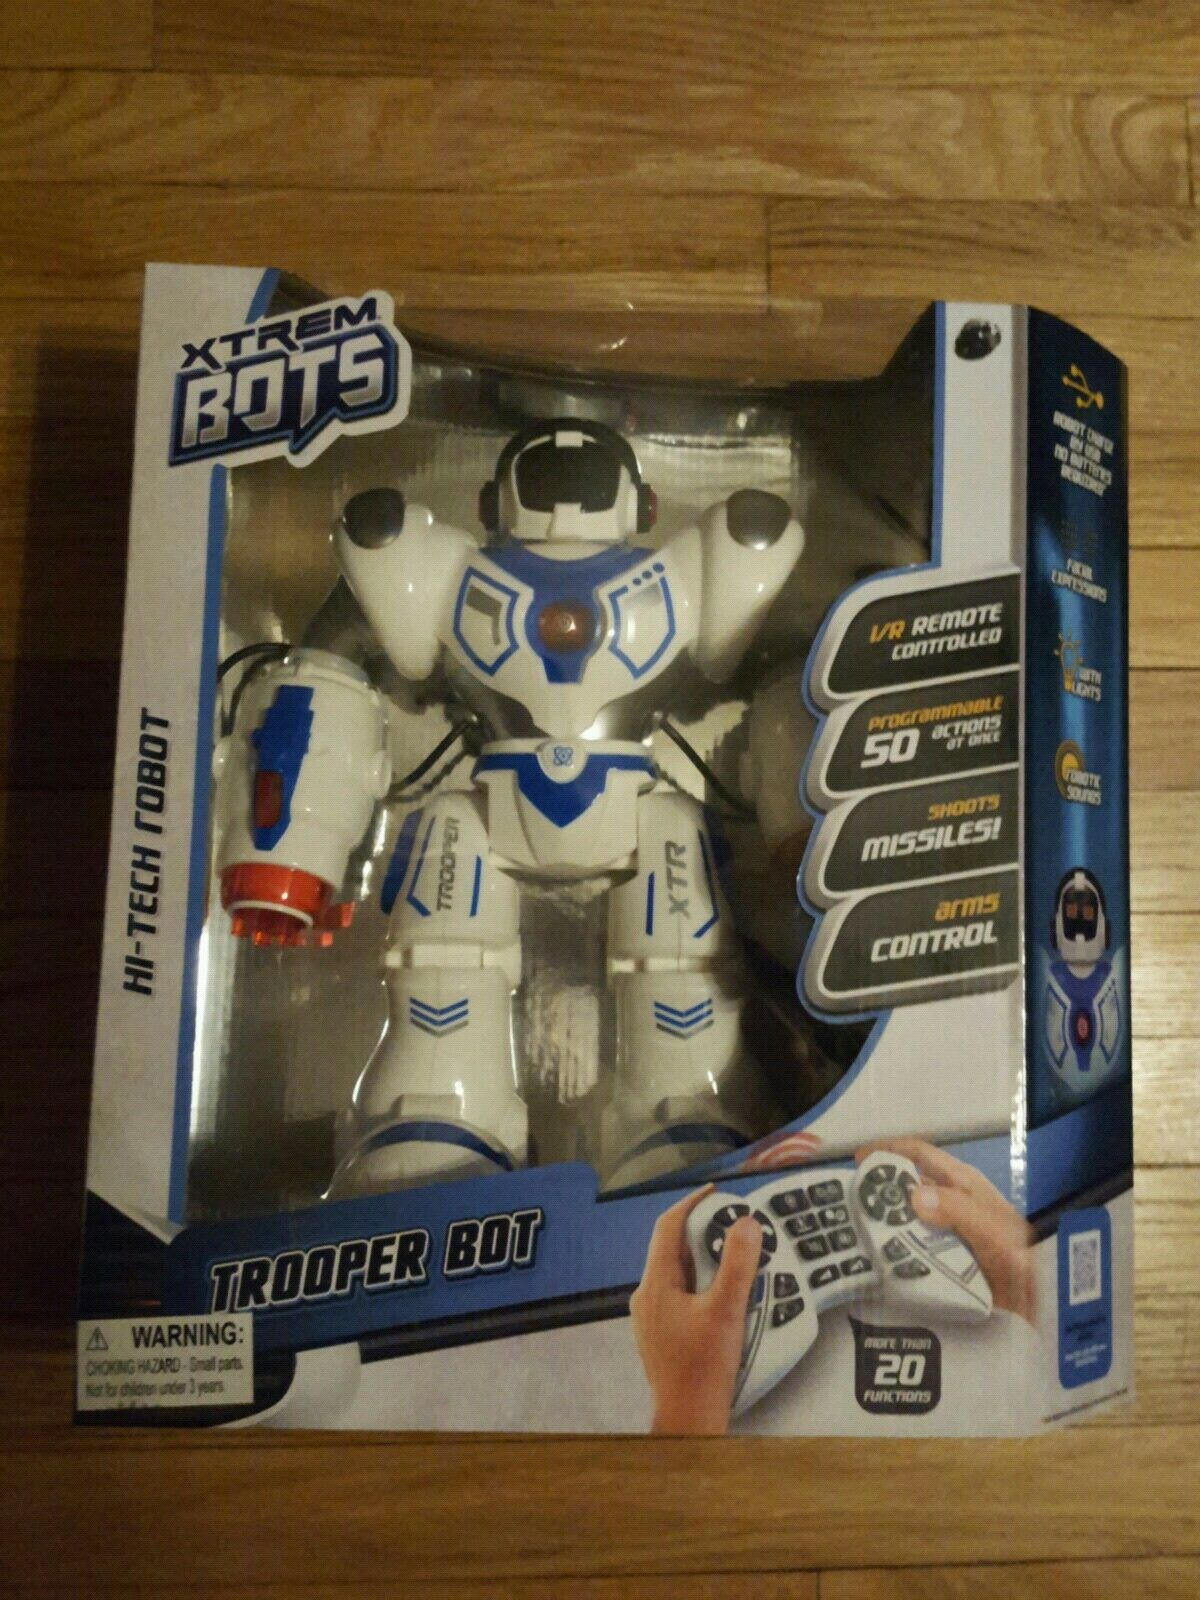 NEW IN BOX XTREM BOTS BATTLE ROBOT TROOPER BOT REMOTE CONTROLLED RC